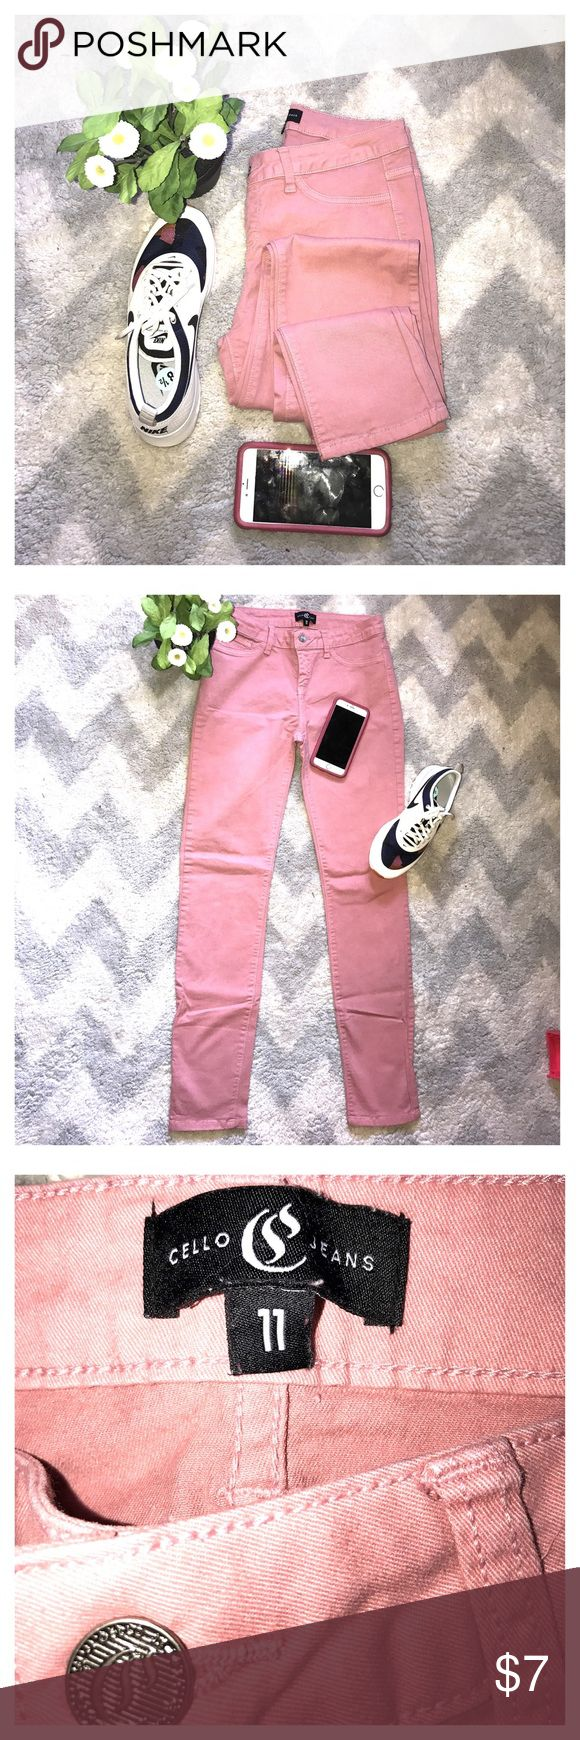 Cello peach skinny jeans Cello peach skinny jeans  clean inside and out good condition inseam 30 size 11 cello jeans Jeans Skinny